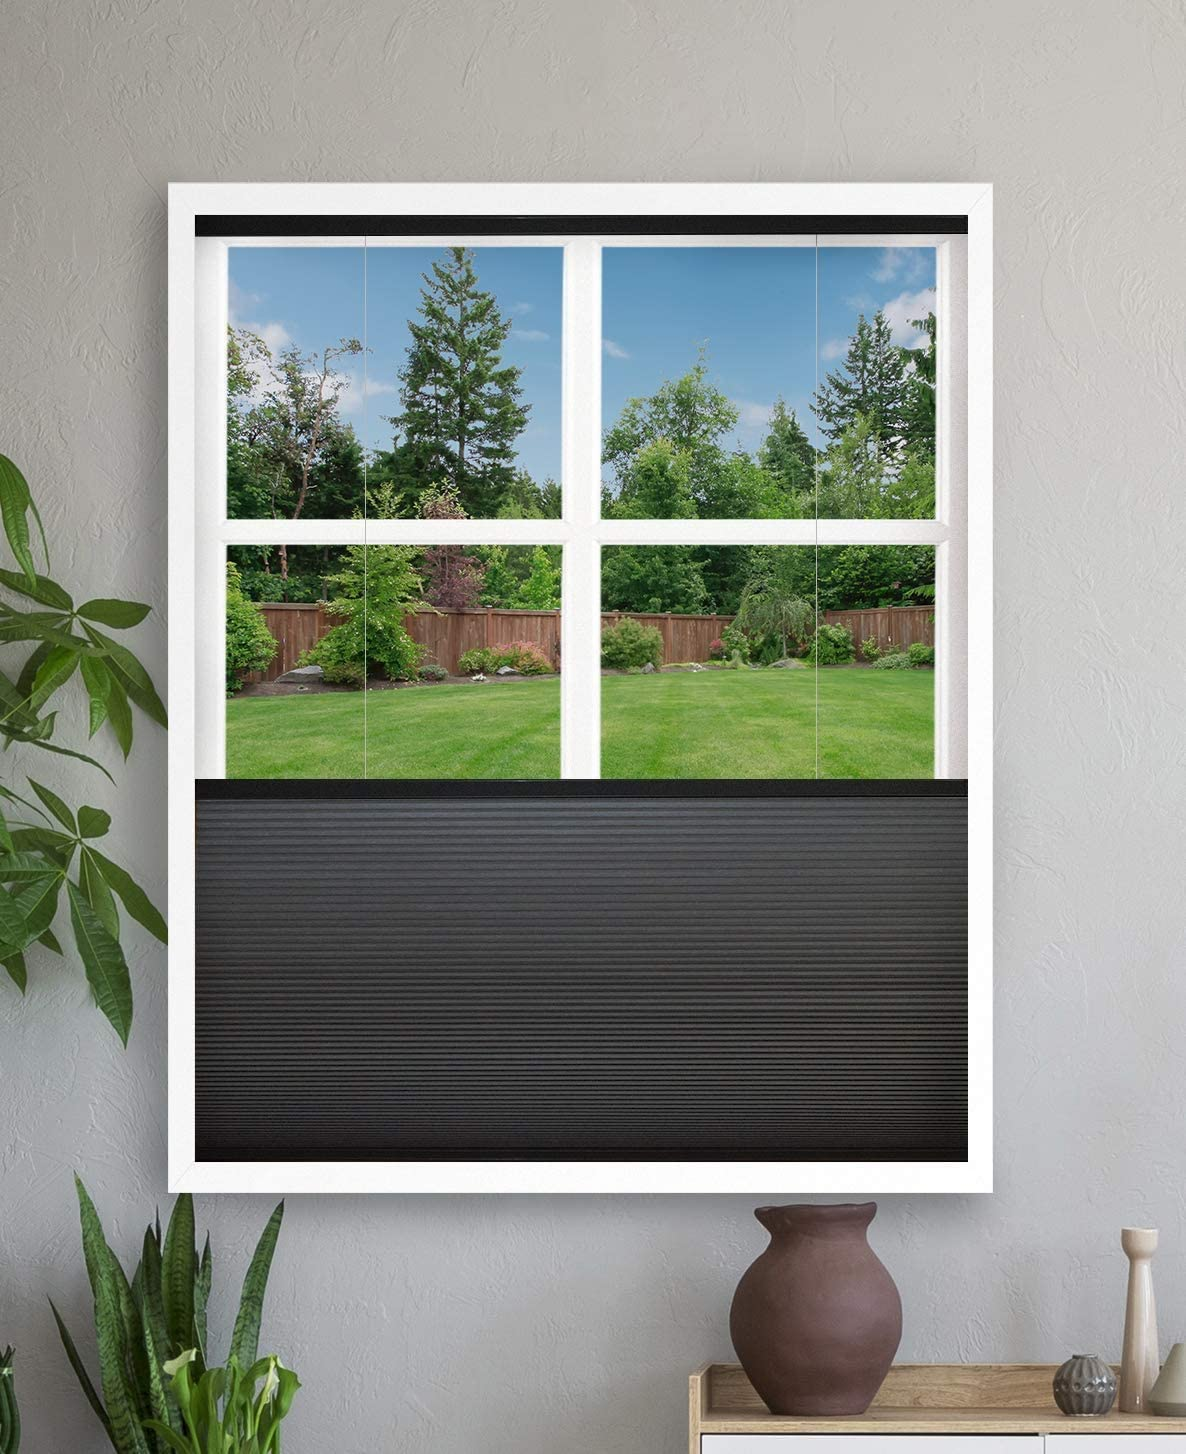 Luxr Blinds Classic Custom-Made Blackout Cellular Cordless Top Do Outlet SALE Shades